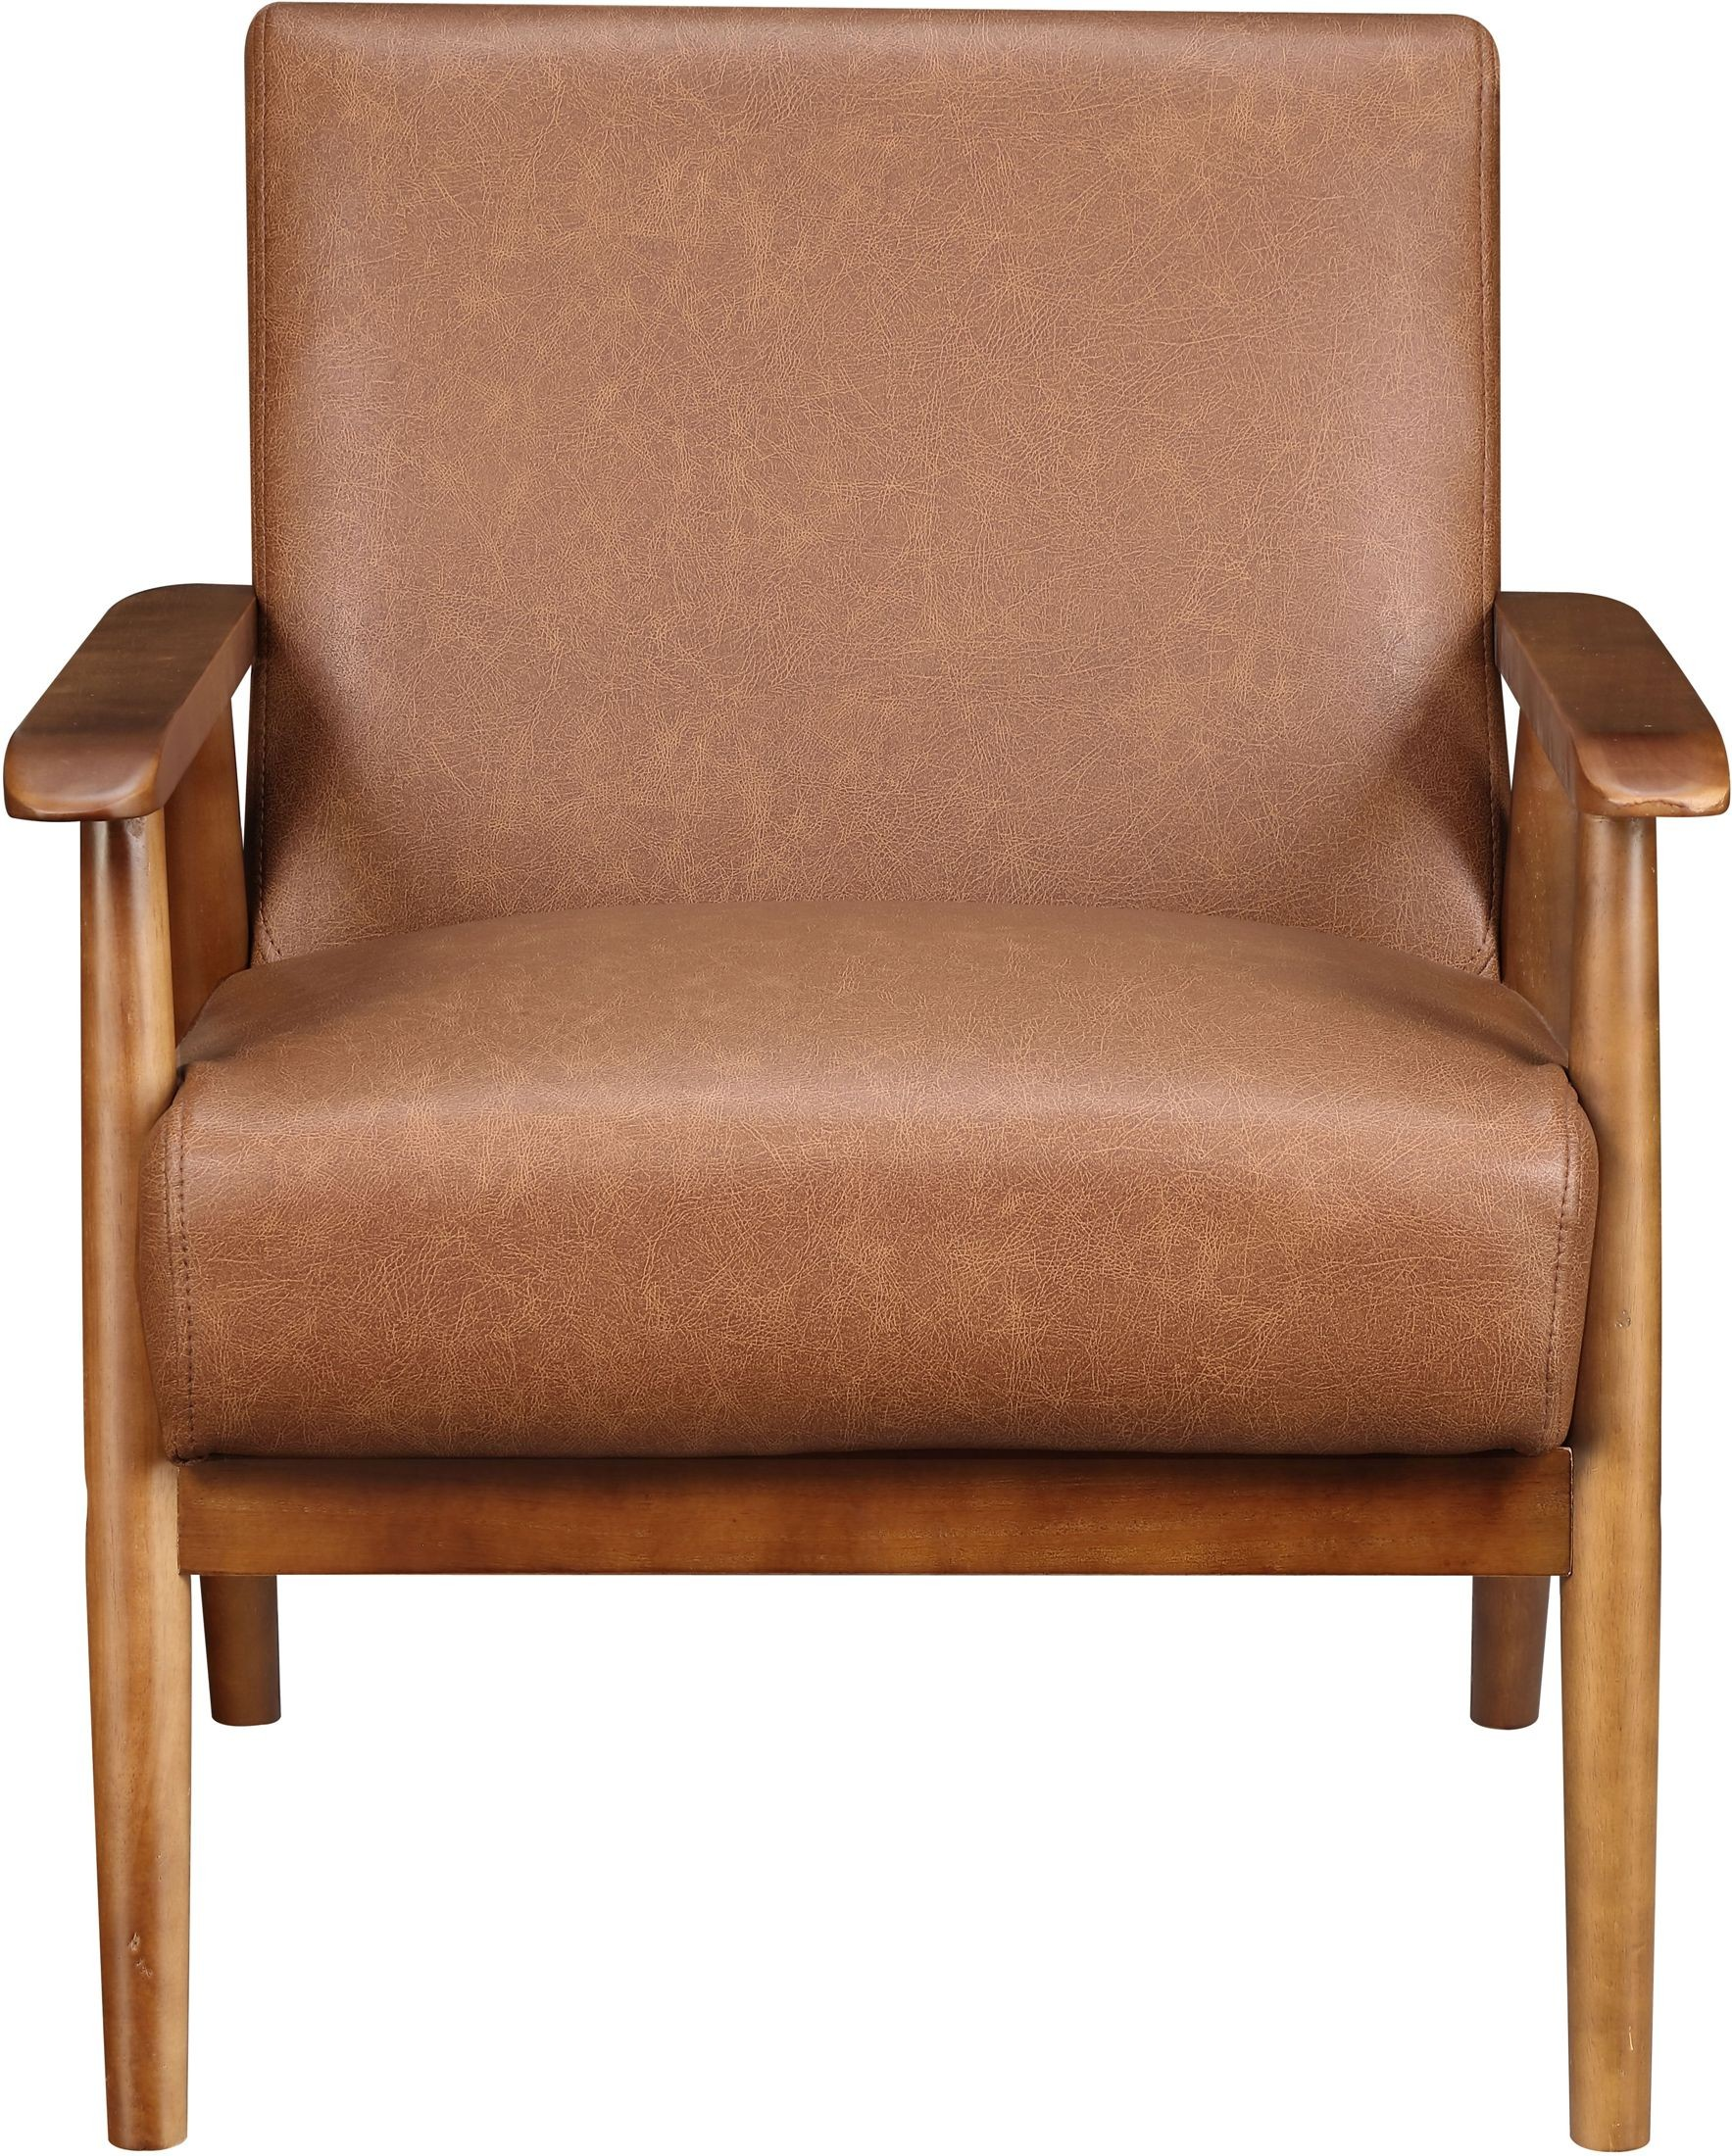 Lummus Cognac Wood Frame Upholstered Accent Chair from Pulaski